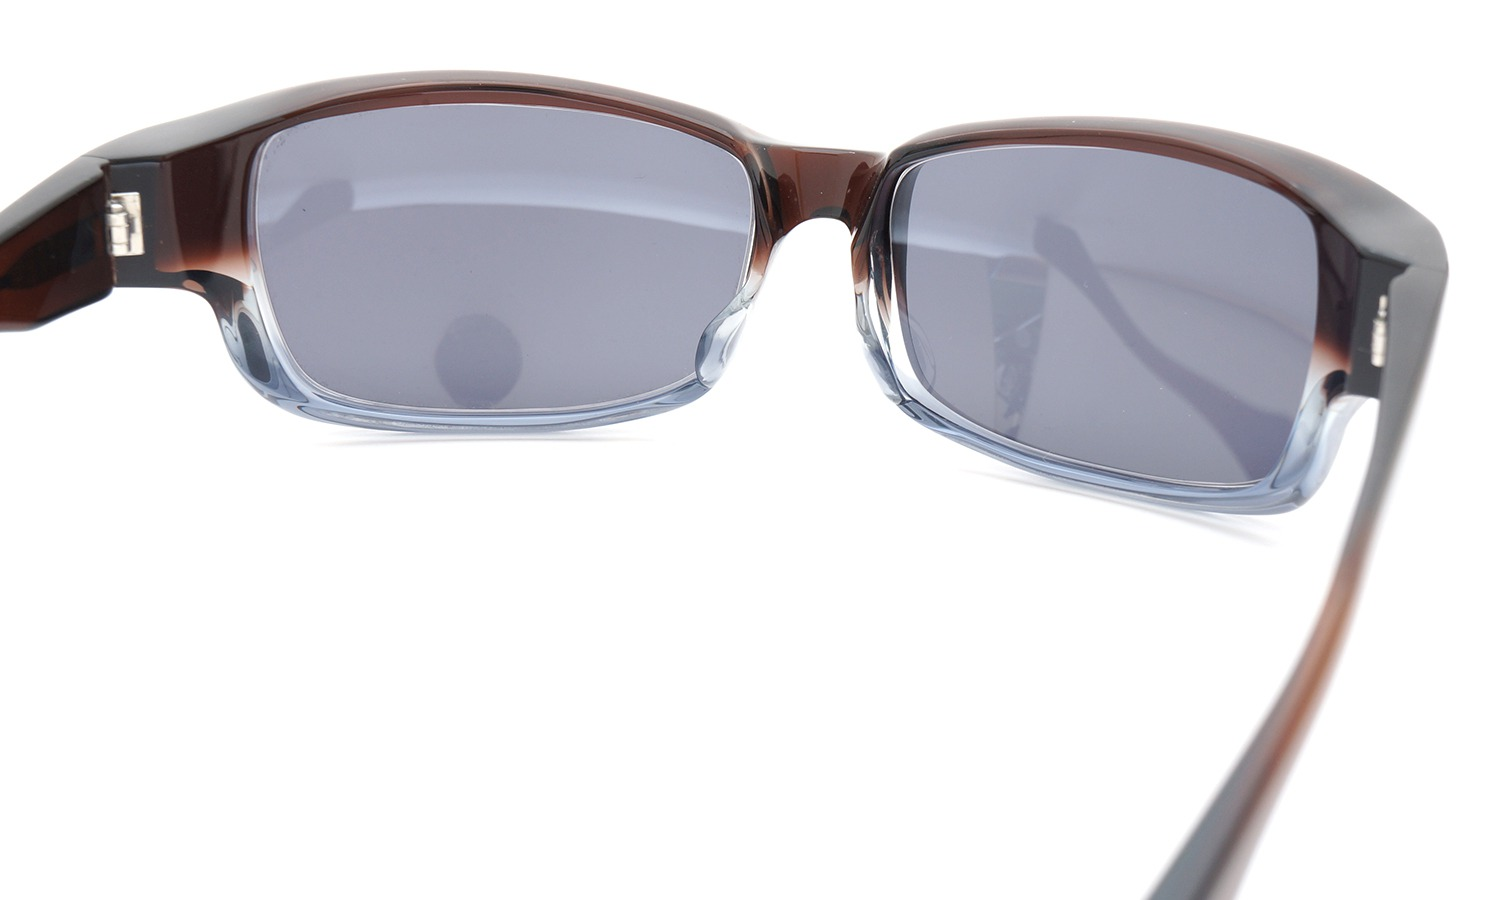 FACTORY900 ×PonMegane 10周年記念オリジナル サングラス F-002 Col.Brown-Clear-Grey Lense.Silver-Matte-Mirror 7